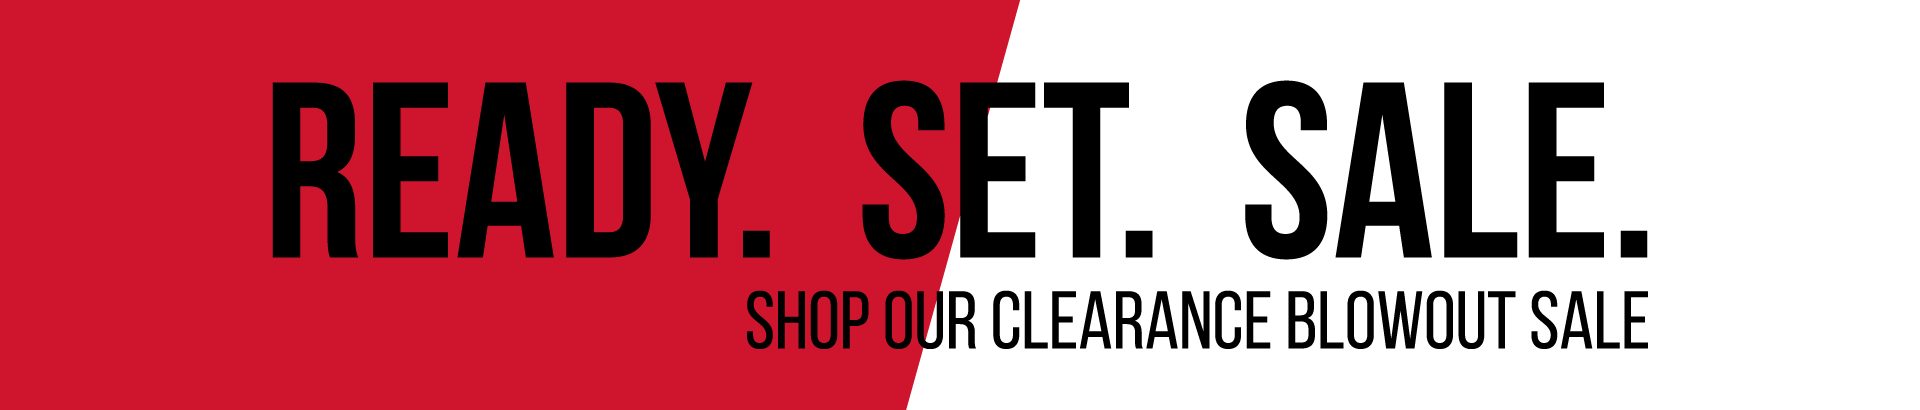 2018-Clearance-Items3.png